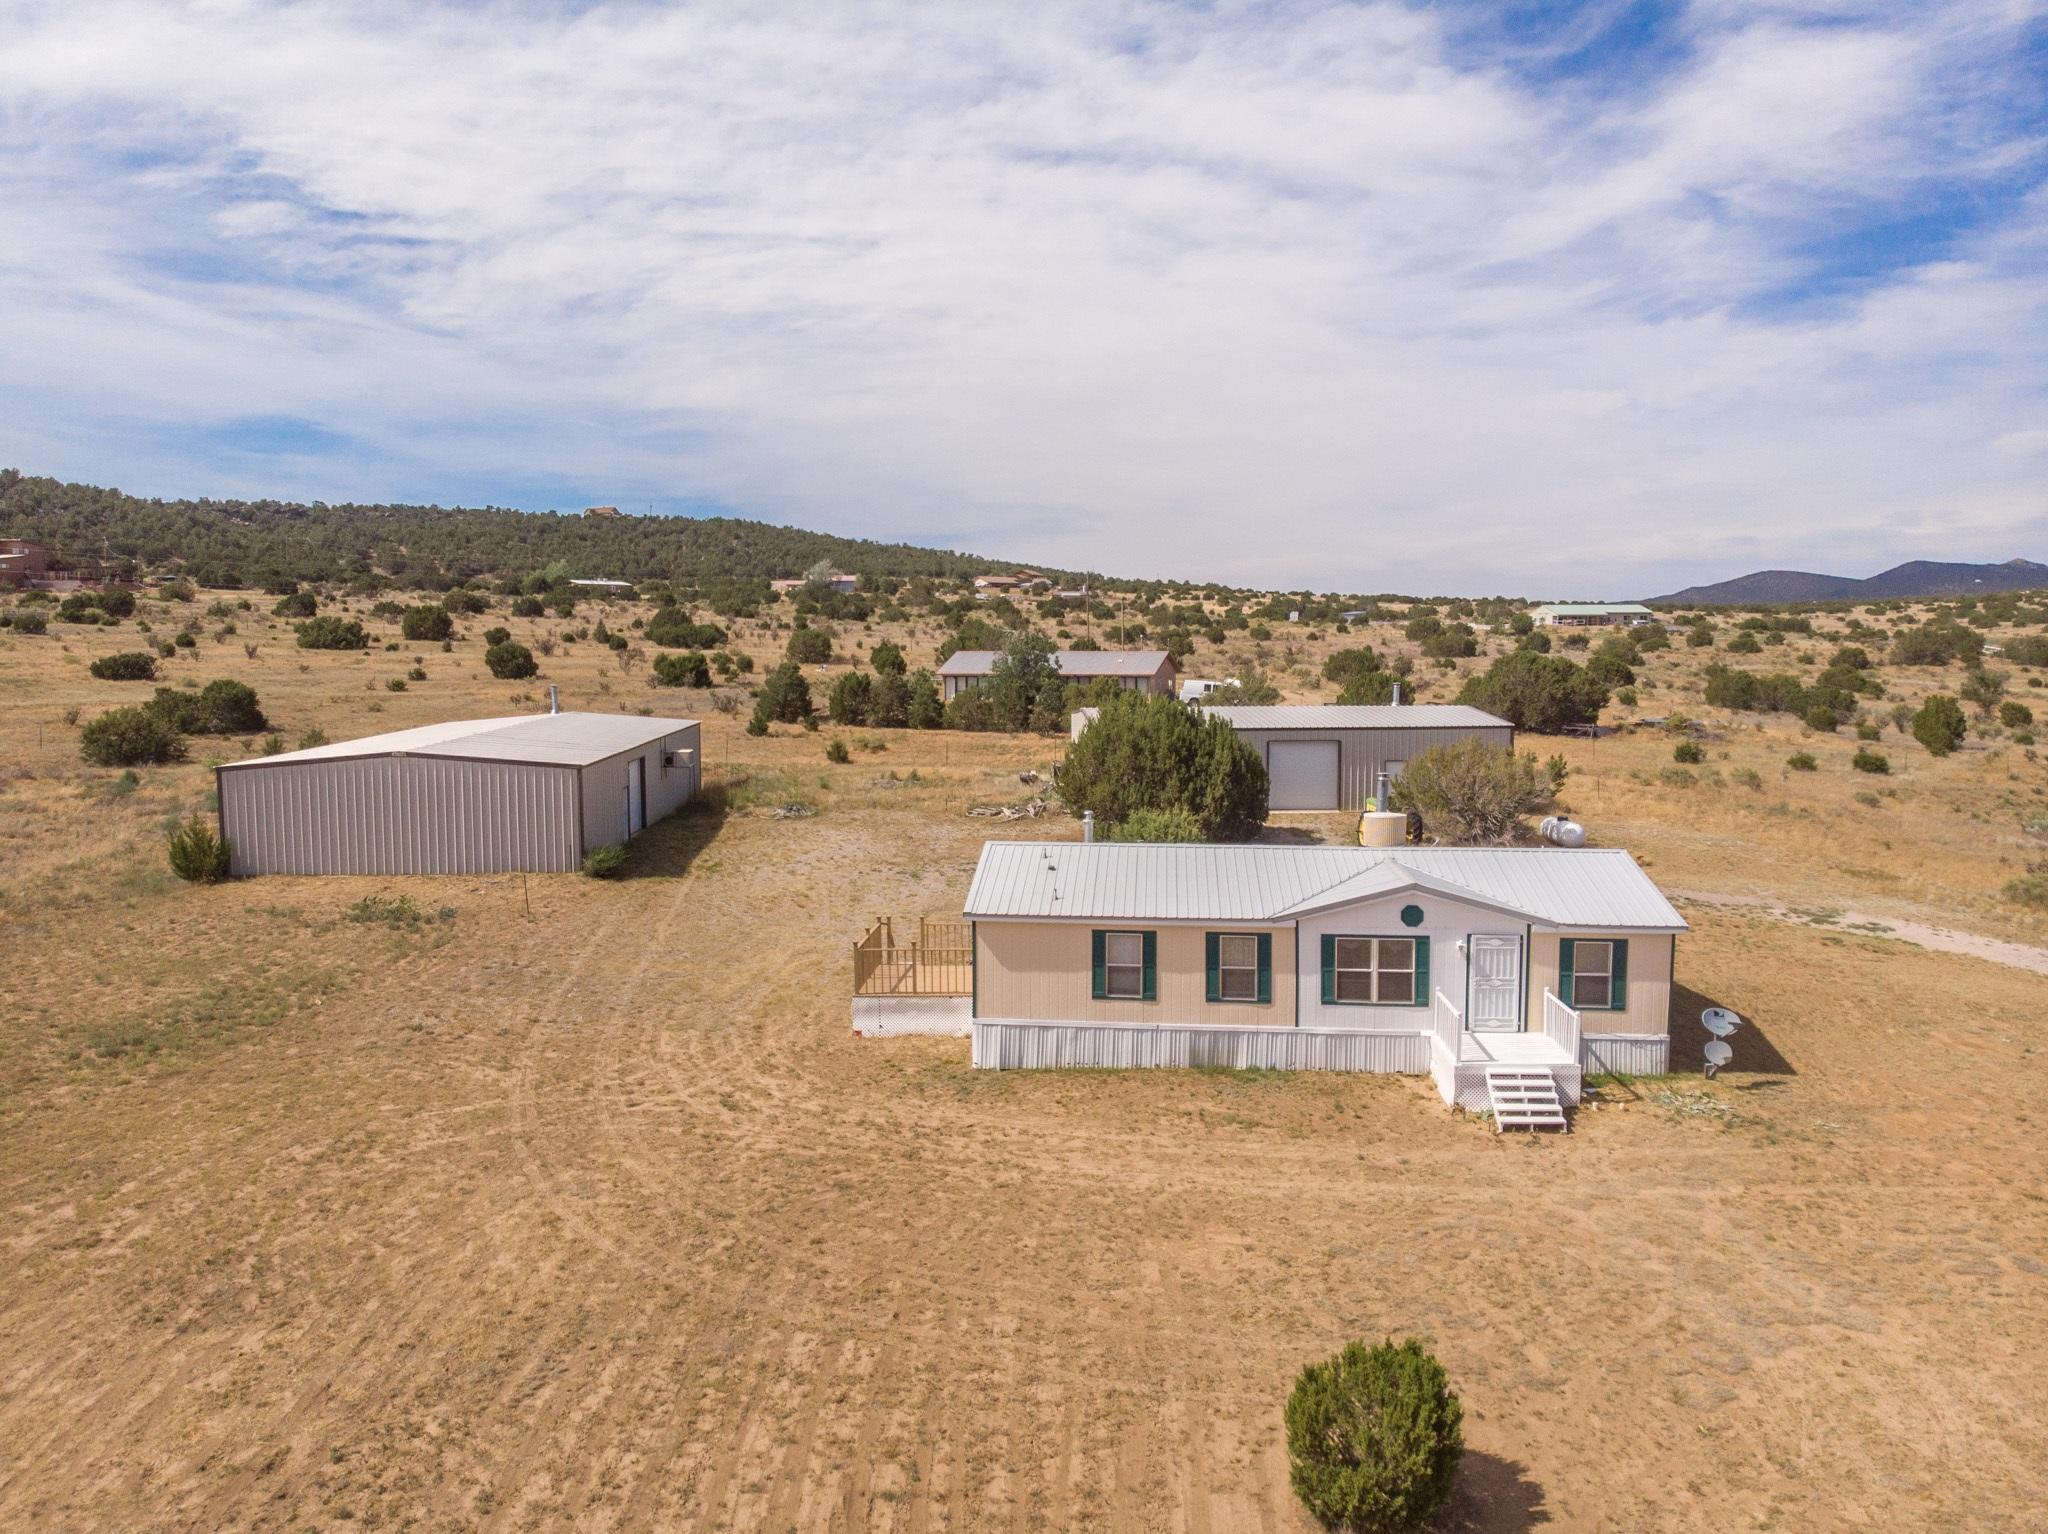 23 GRIGSBY Lane Property Photo - Tijeras, NM real estate listing